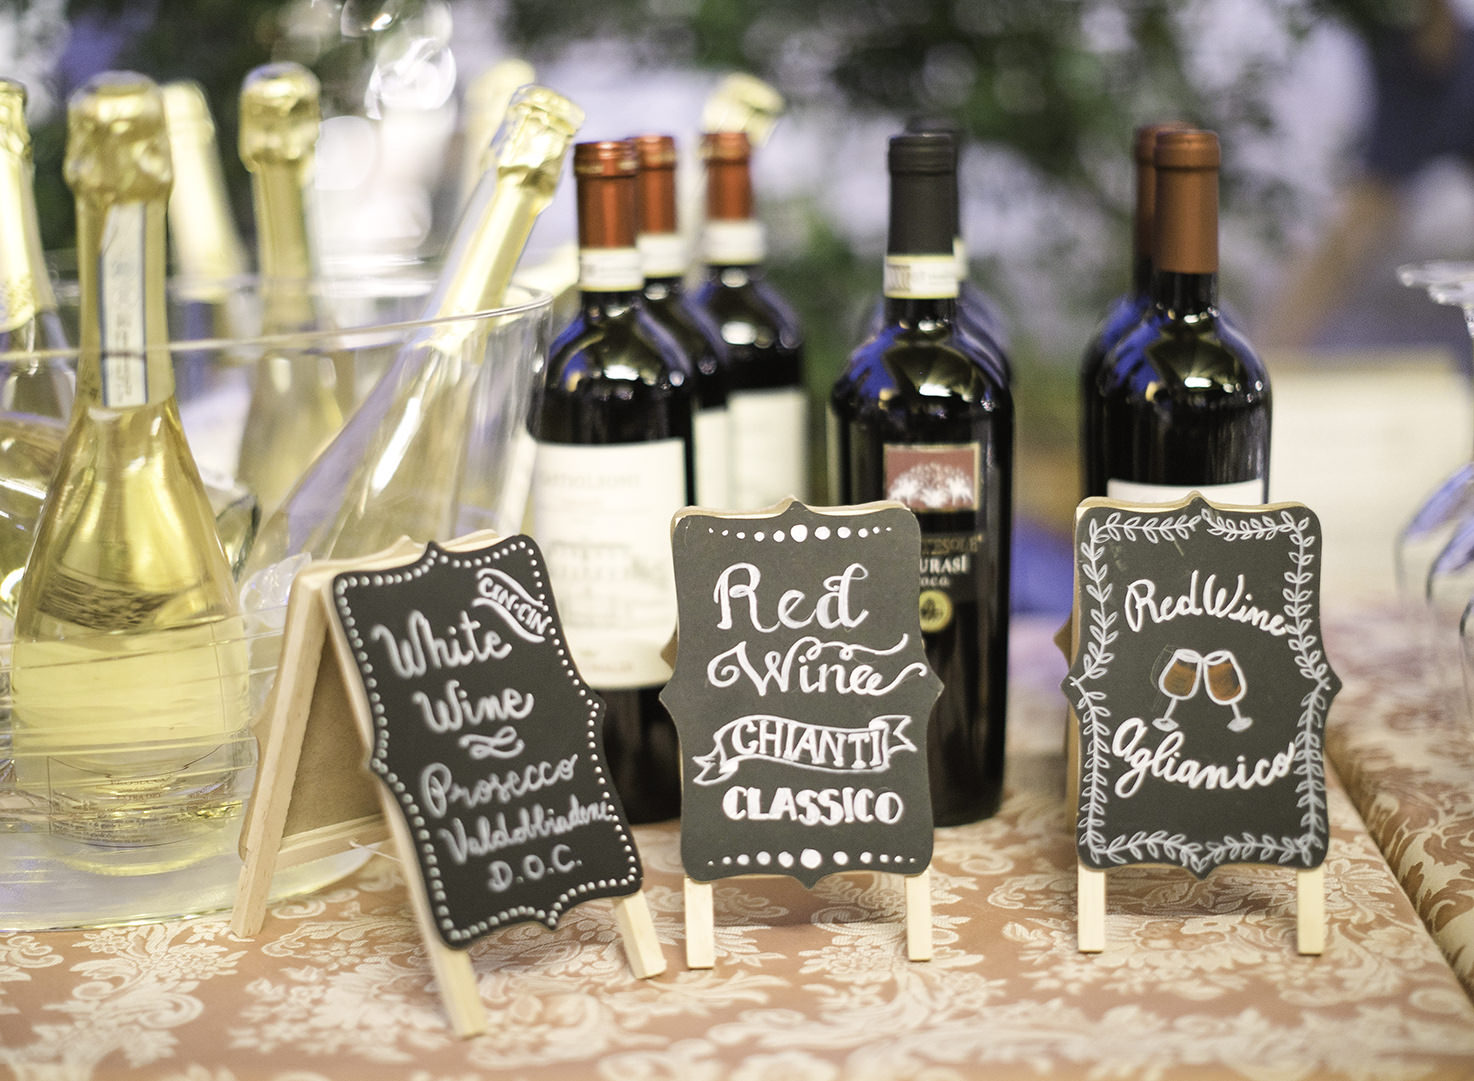 Red and white Italian wines